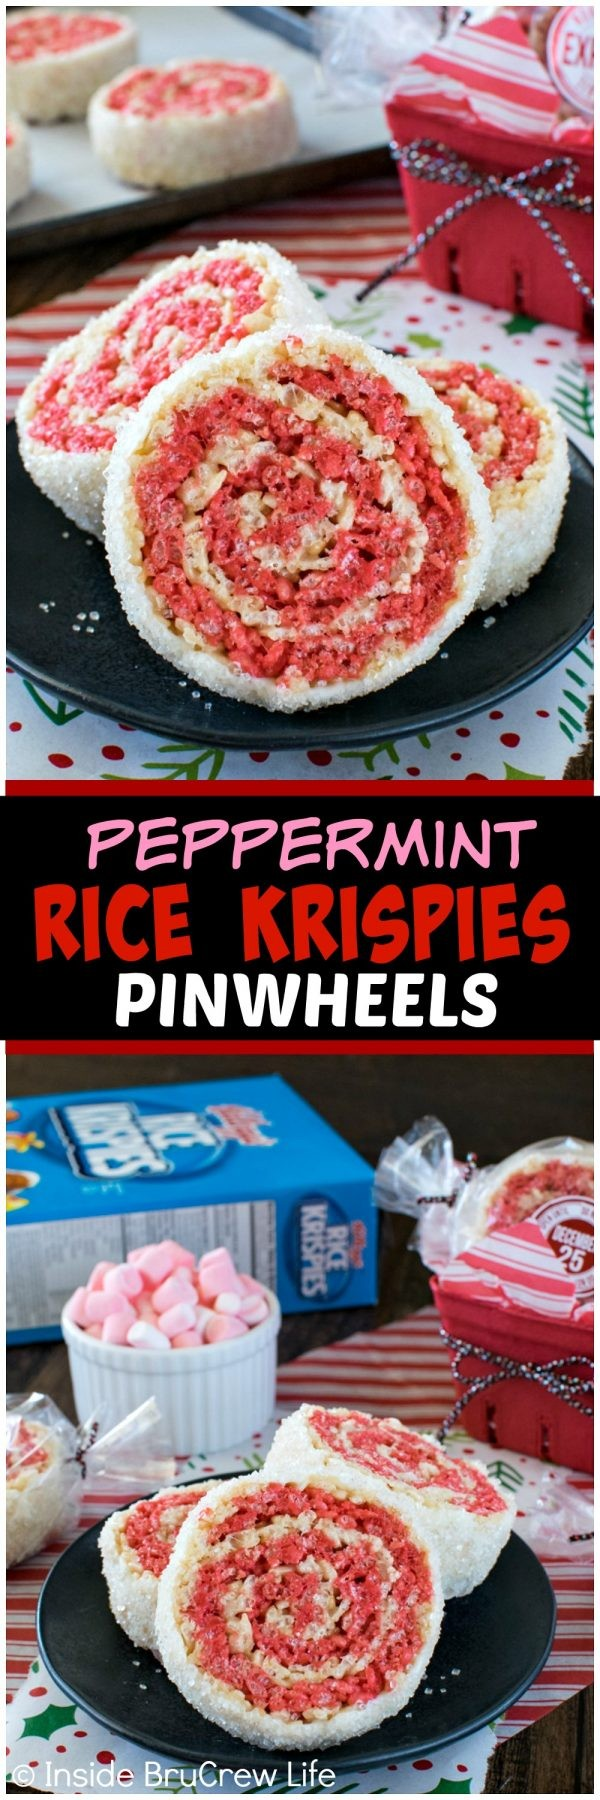 Peppermint Rice Krispies Pinwheels - these easy no bake treats have swirls of red and white and have a white chocolate sugar coating. Great recipe for holiday parties! This was created in partnership with Rice Krispies. #ad